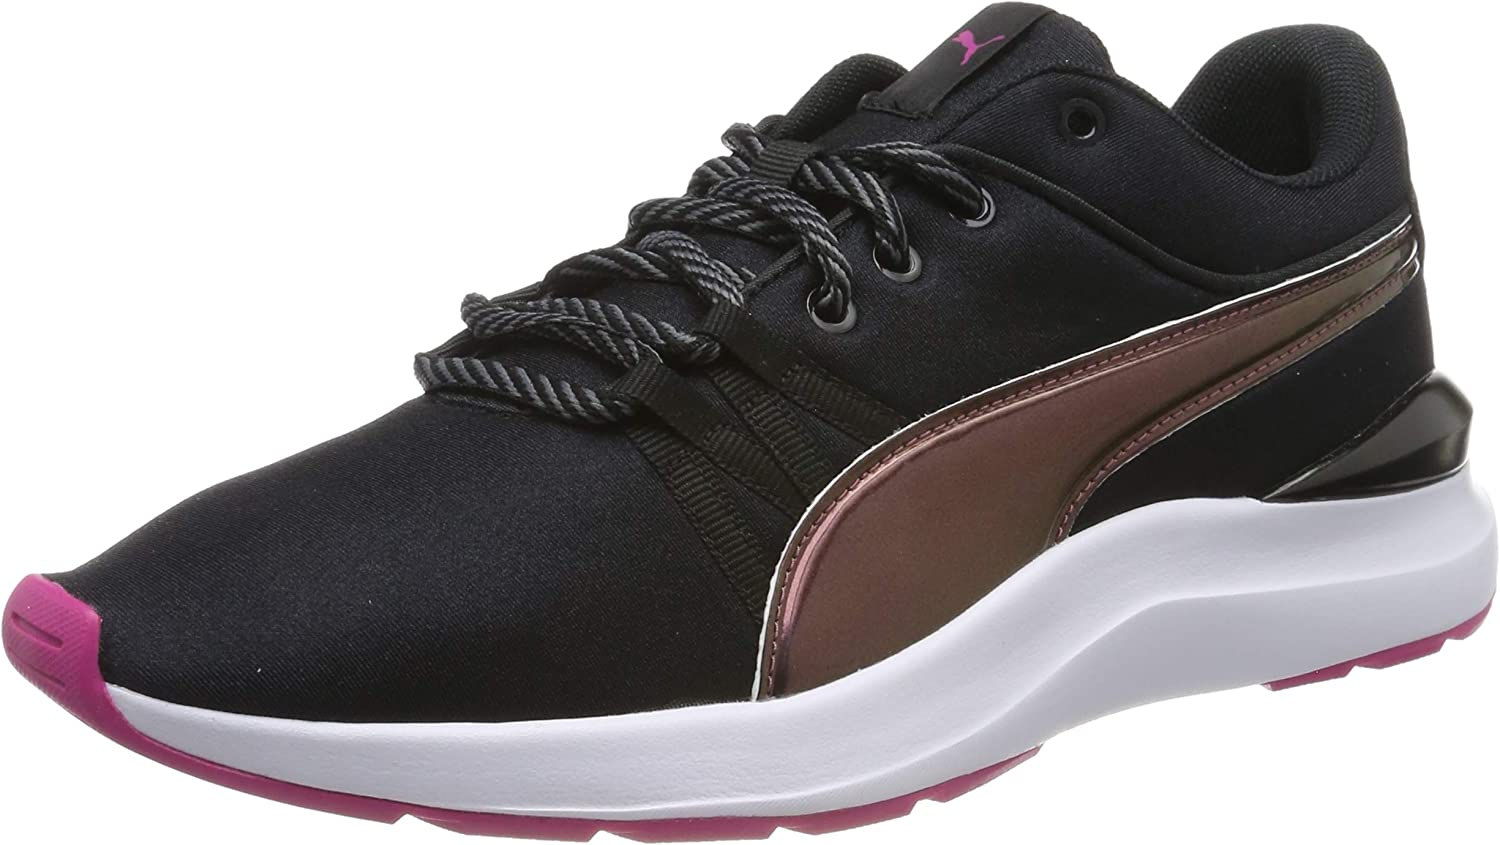 PUMA Women's Adela Trailblazer Q2 Low-Top Sneakers